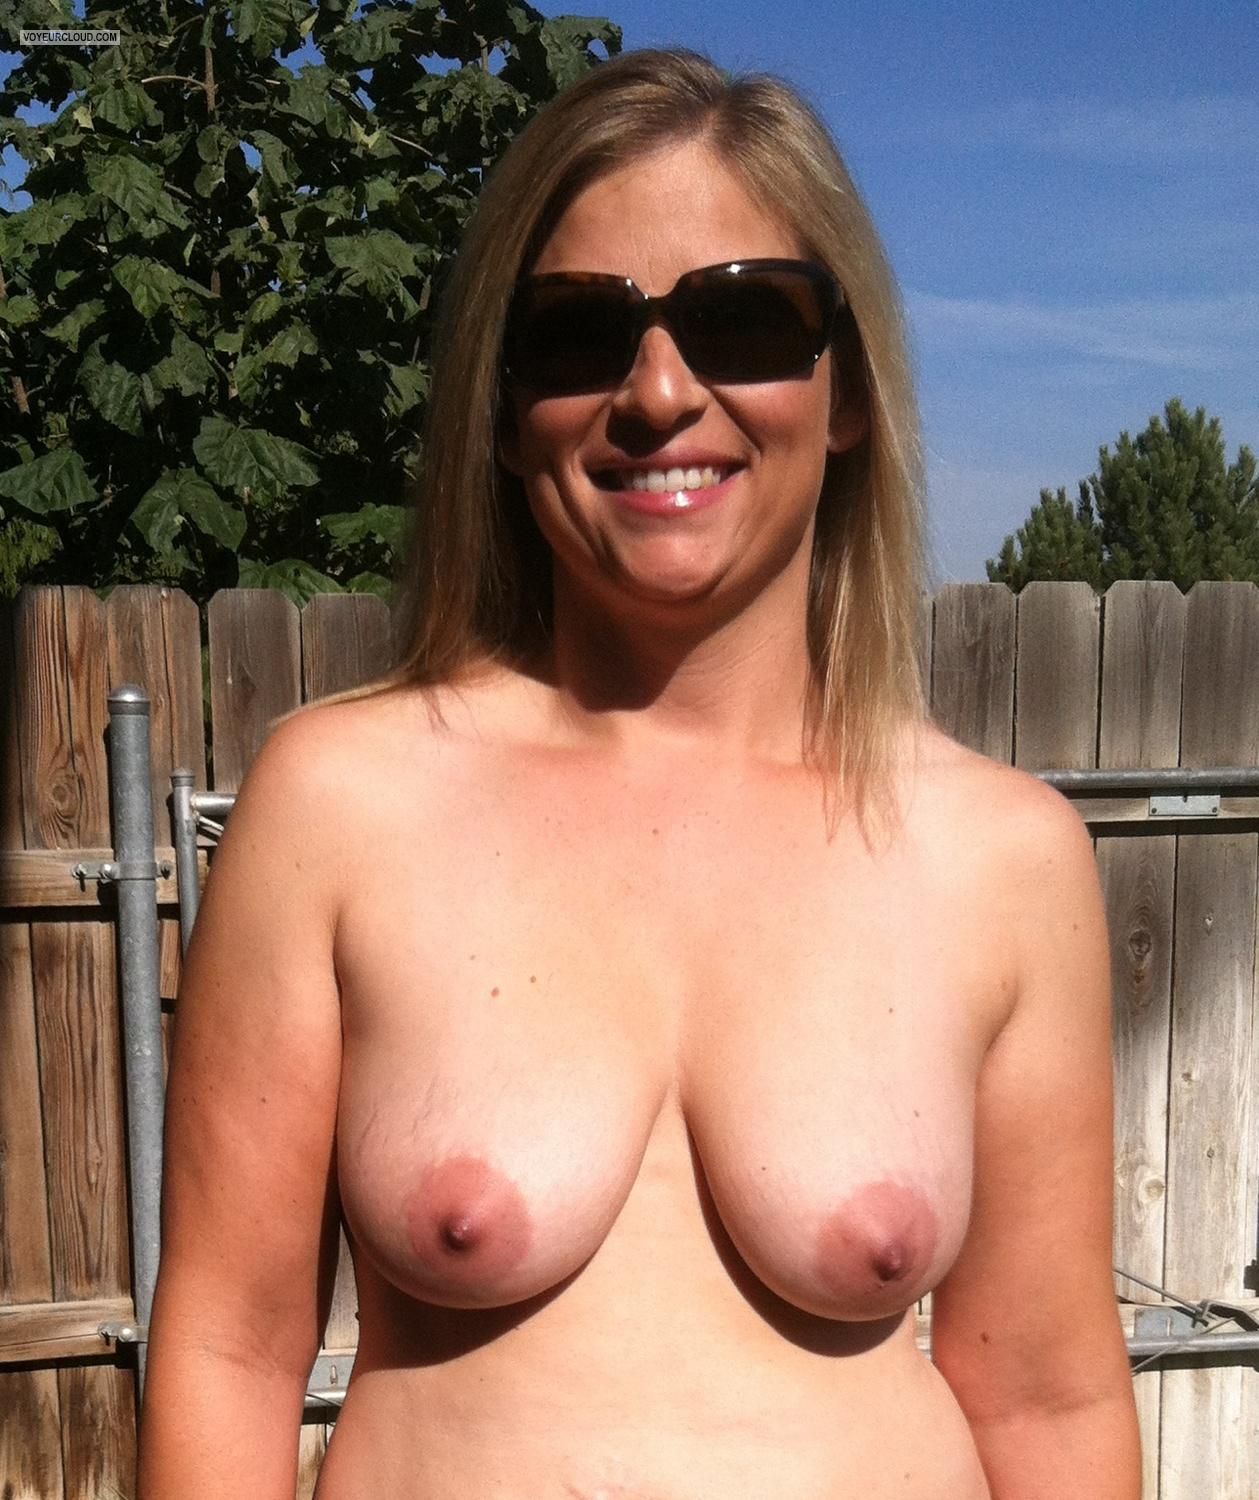 nudes-of-american-girls